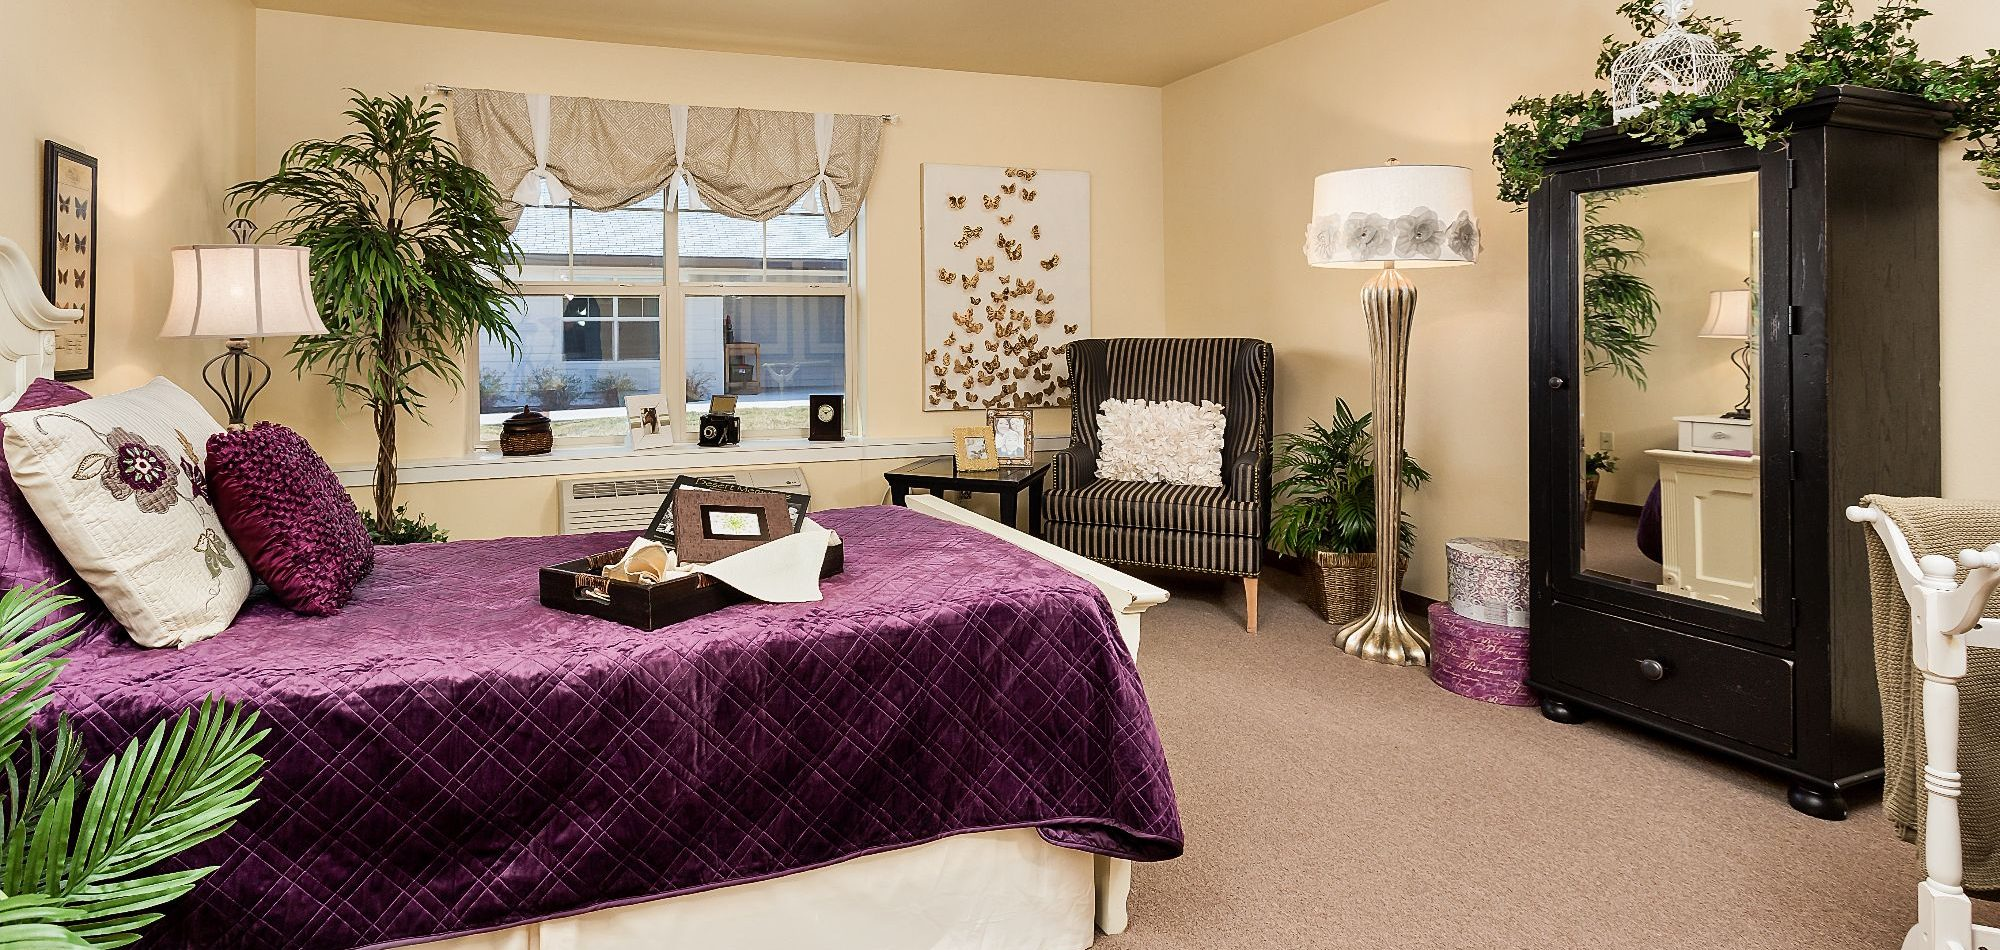 Tips For Decorating Bedrooms For Elderly People